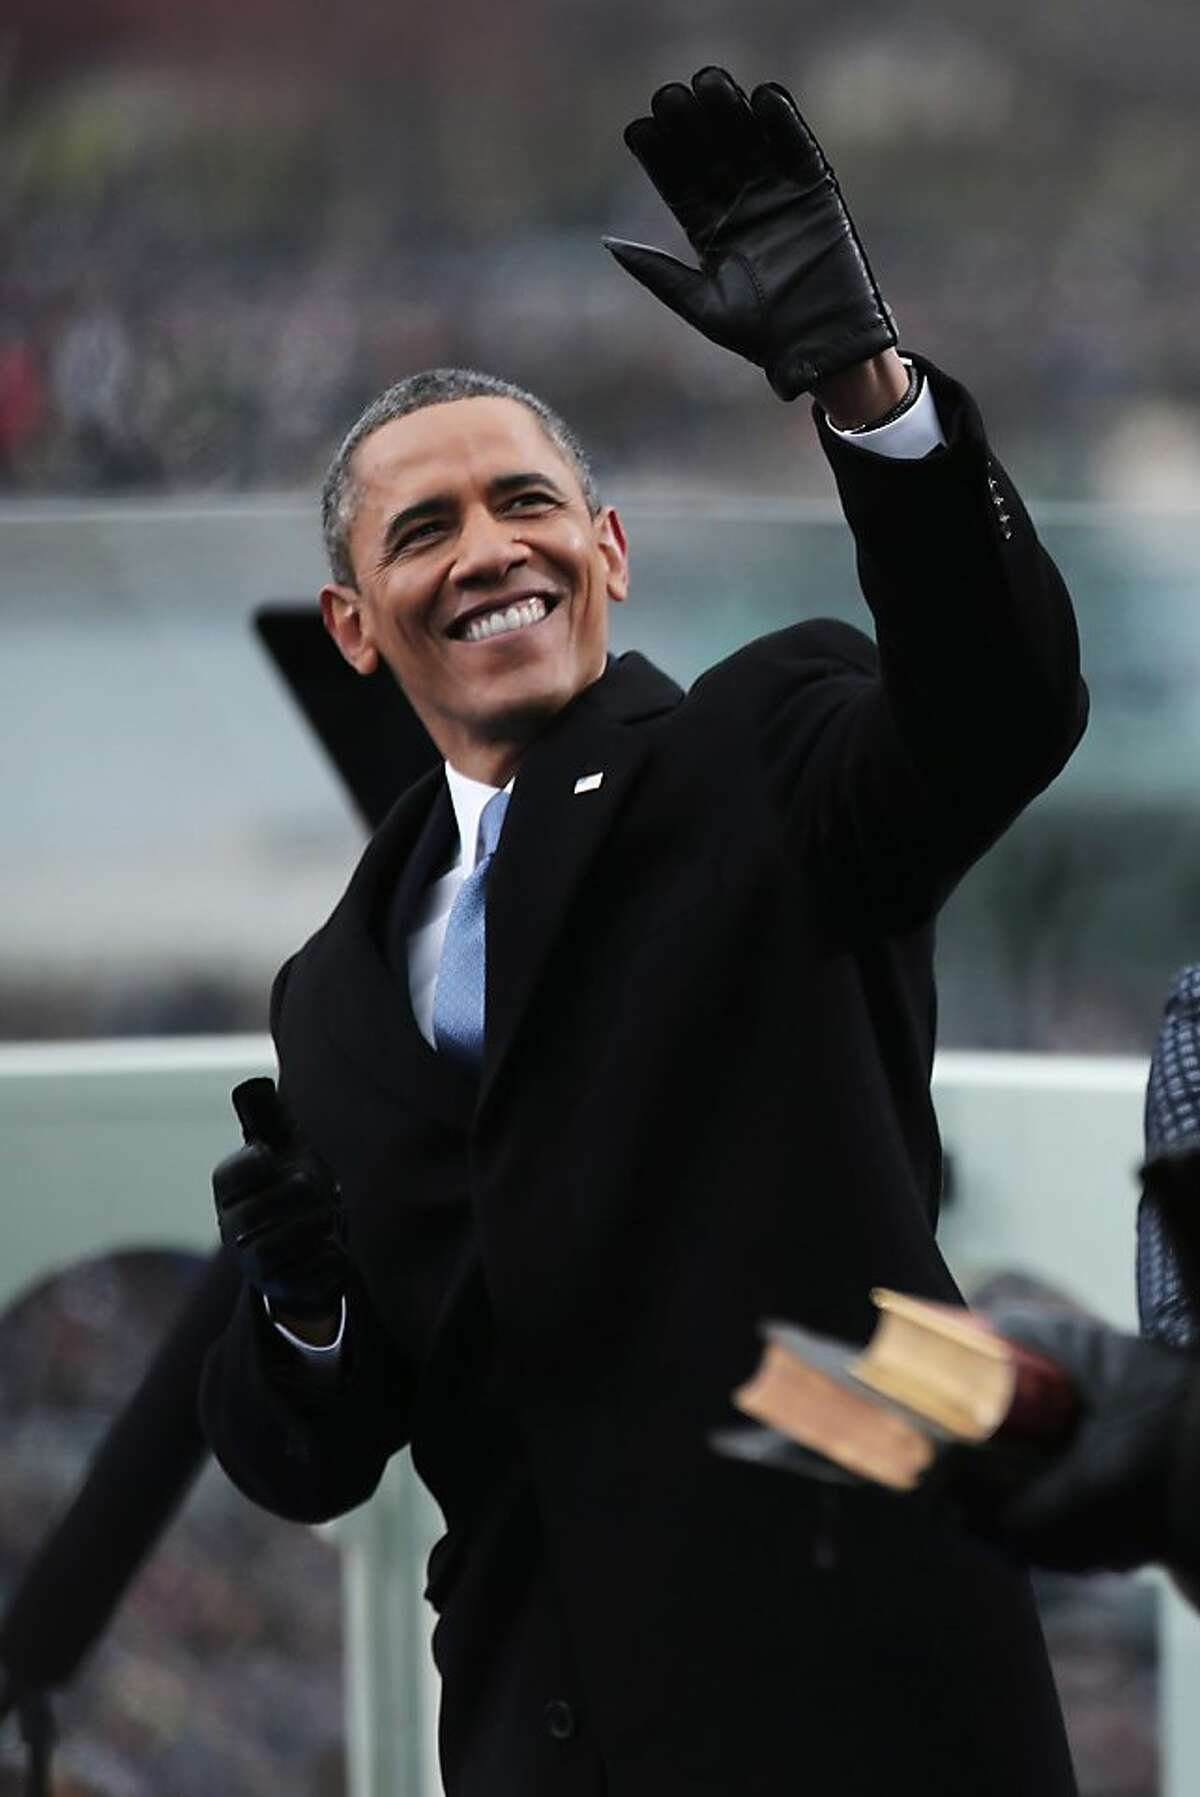 US President Barack Obama waves during the presidential inauguration on the West Front of the US Capitol January 21, 2013 in Washington, DC. Barack Obama was re-elected for a second term as President of the United States. AFP PHOTO/POOL/WIN MCNAMEEWIN MCNAMEE/AFP/Getty Images